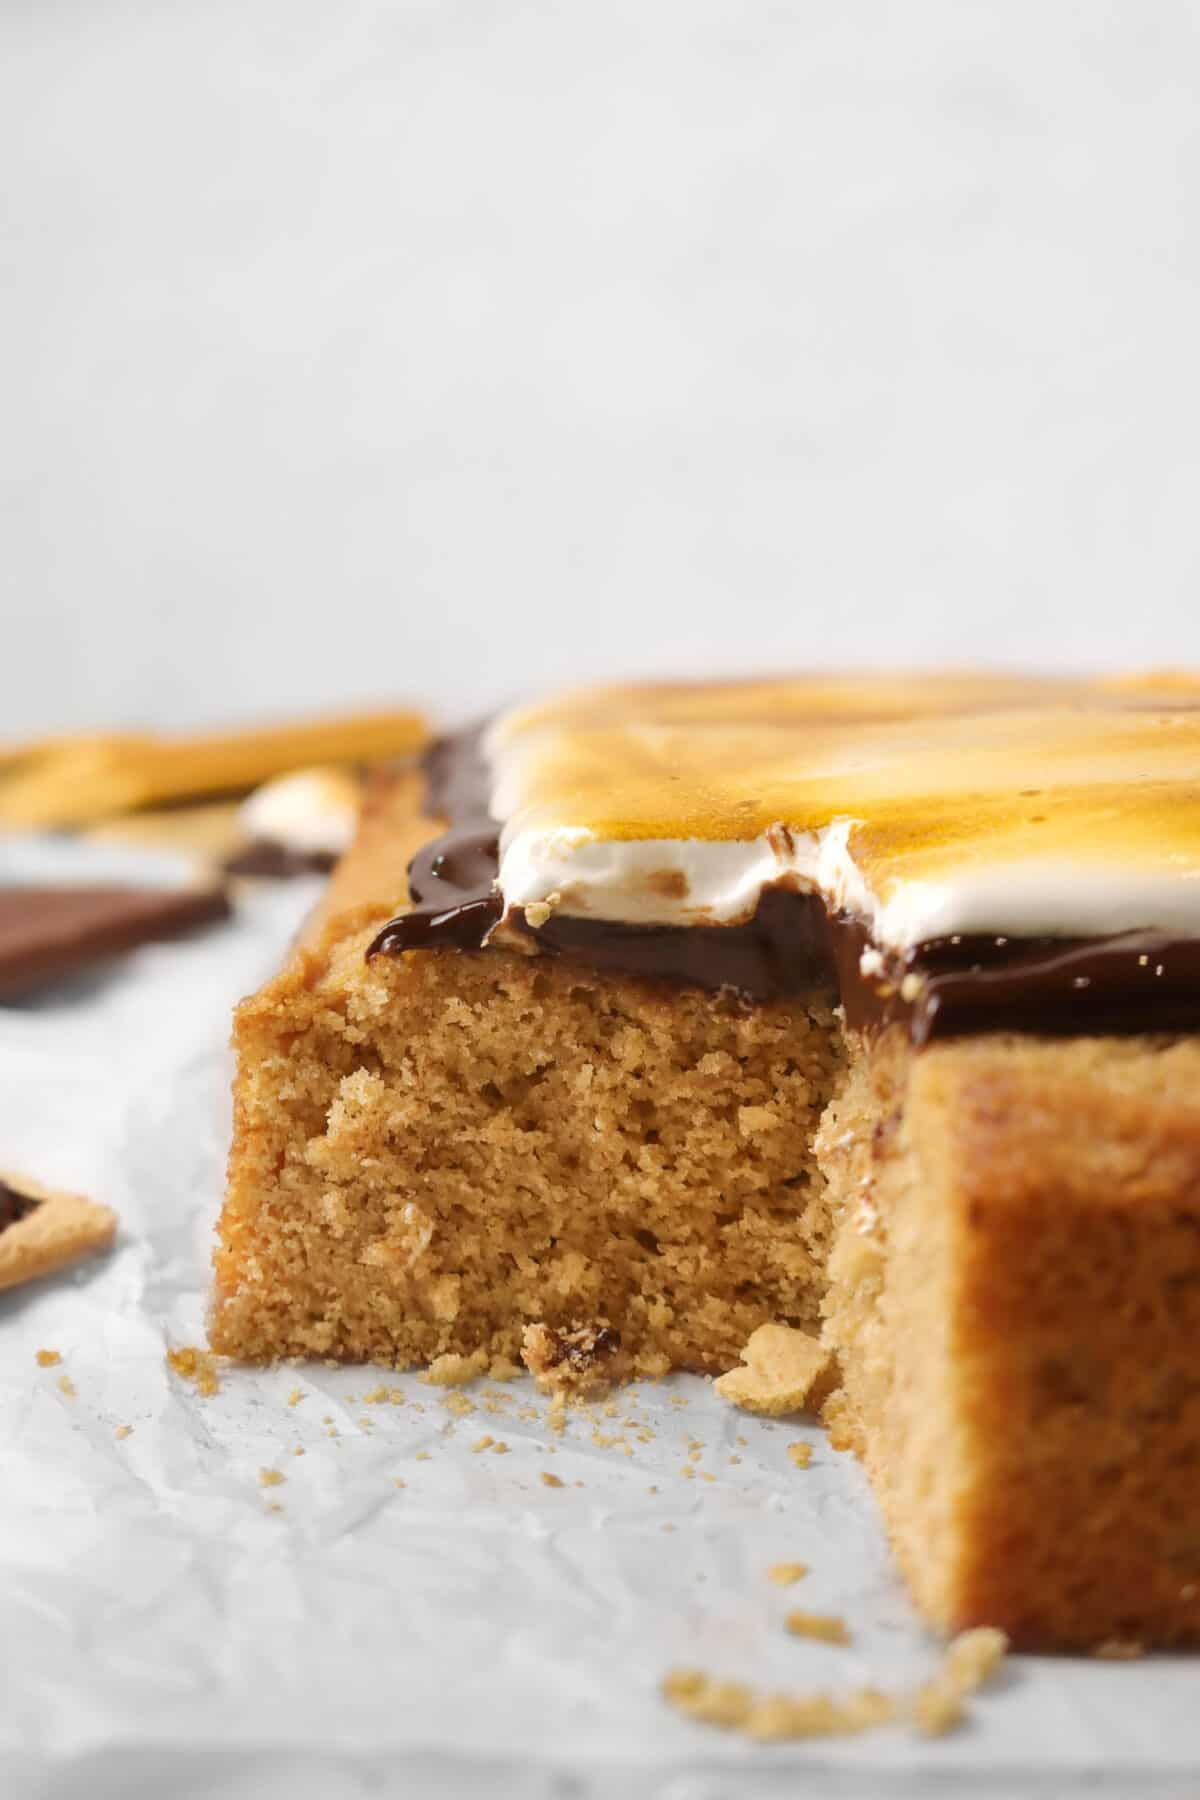 vertical zoomed in shot of s'mores cake with a slice taken out of it